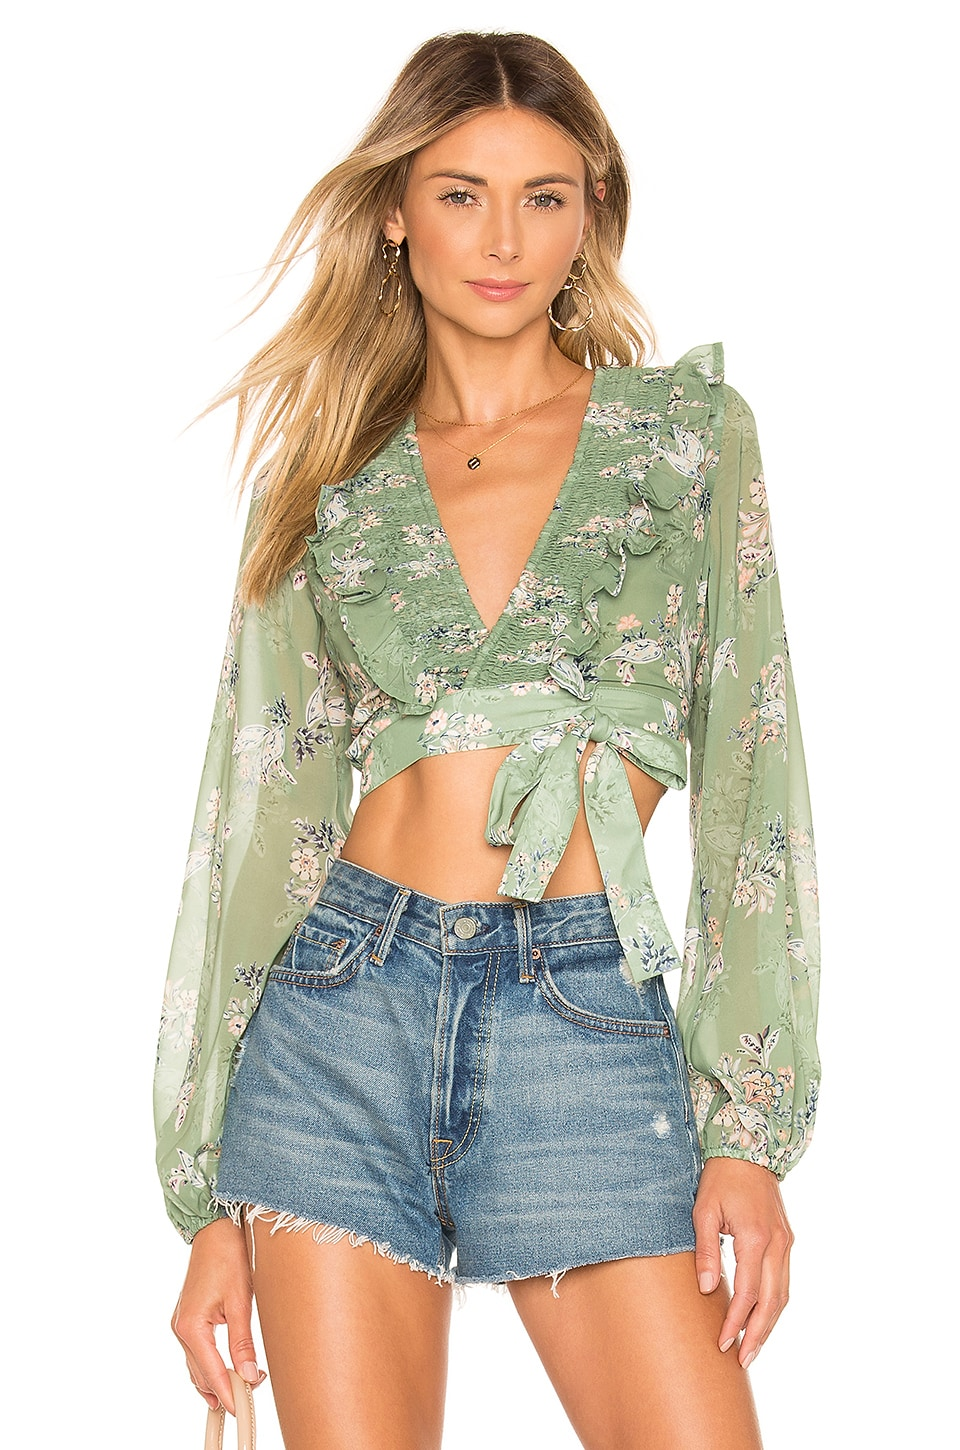 House of Harlow 1960 x REVOLVE Juniper Top in Sage Floral